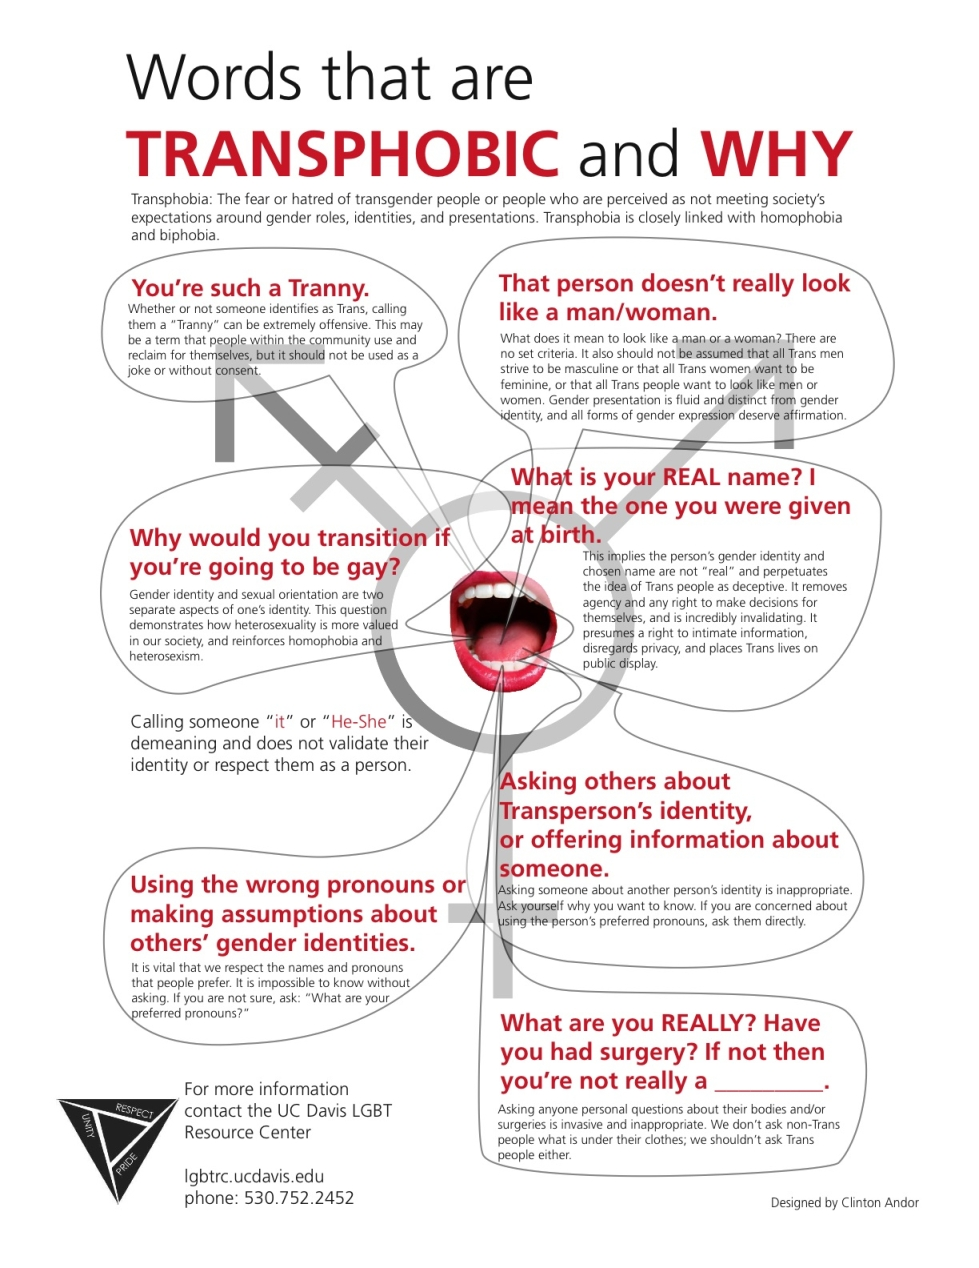 Gracious Mind Transphobic and Why